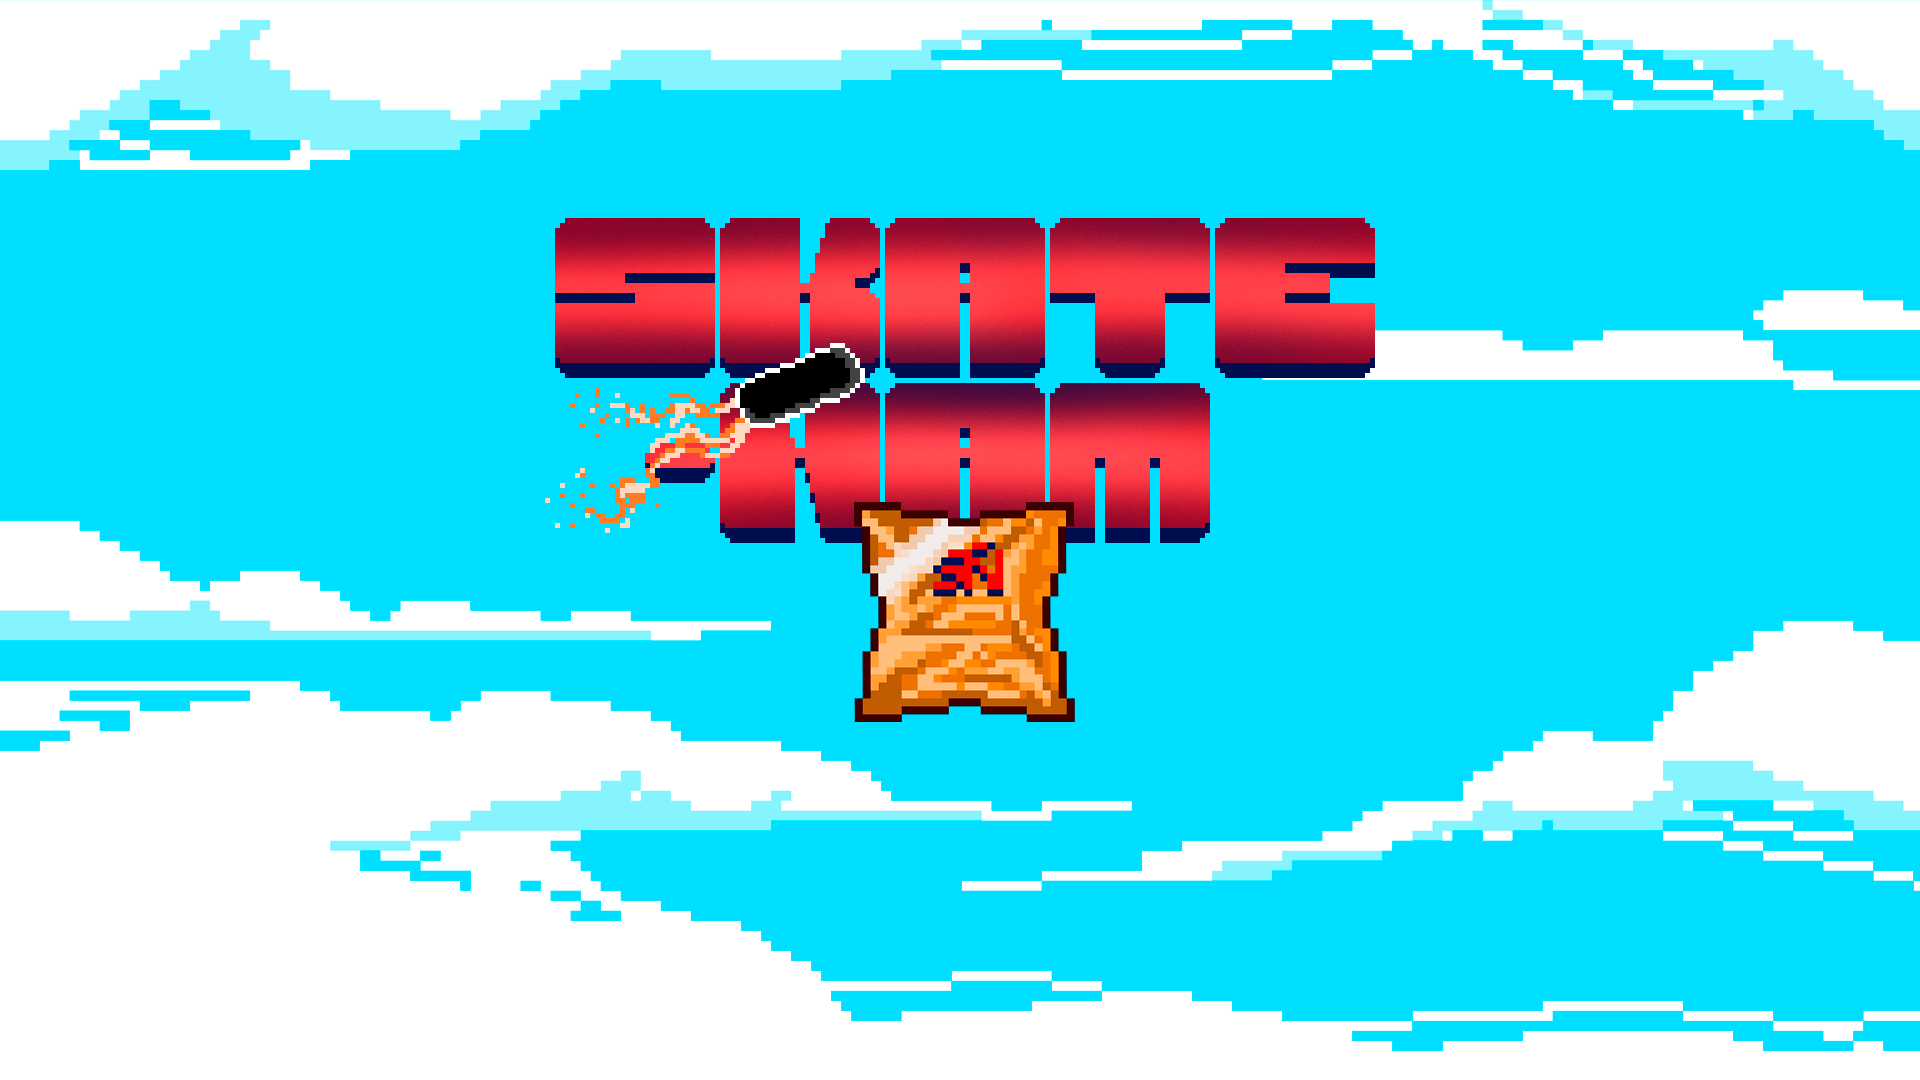 Skate Ñam Original (Skate-Jam Version)